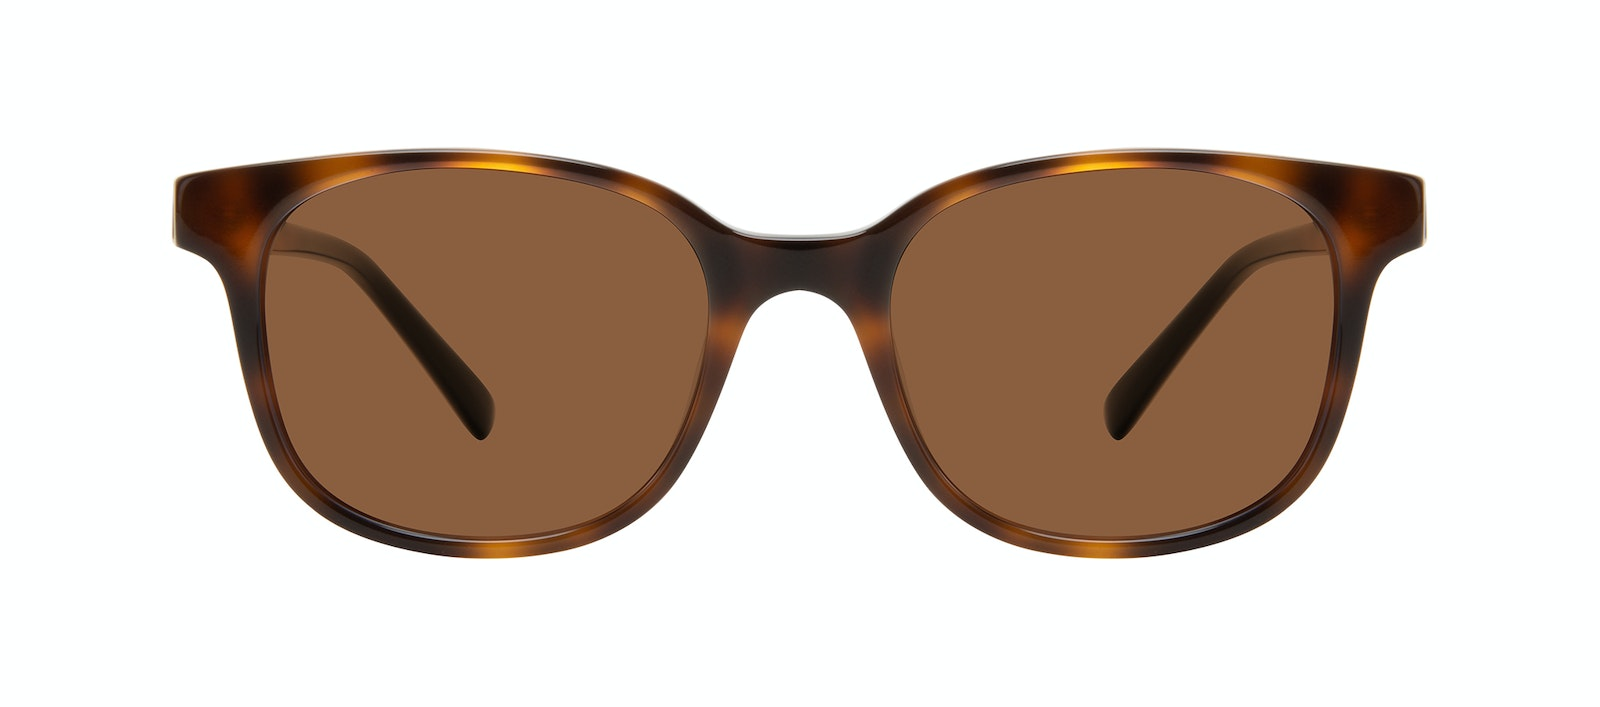 Affordable Fashion Glasses Square Sunglasses Women Unique Tortoise Front